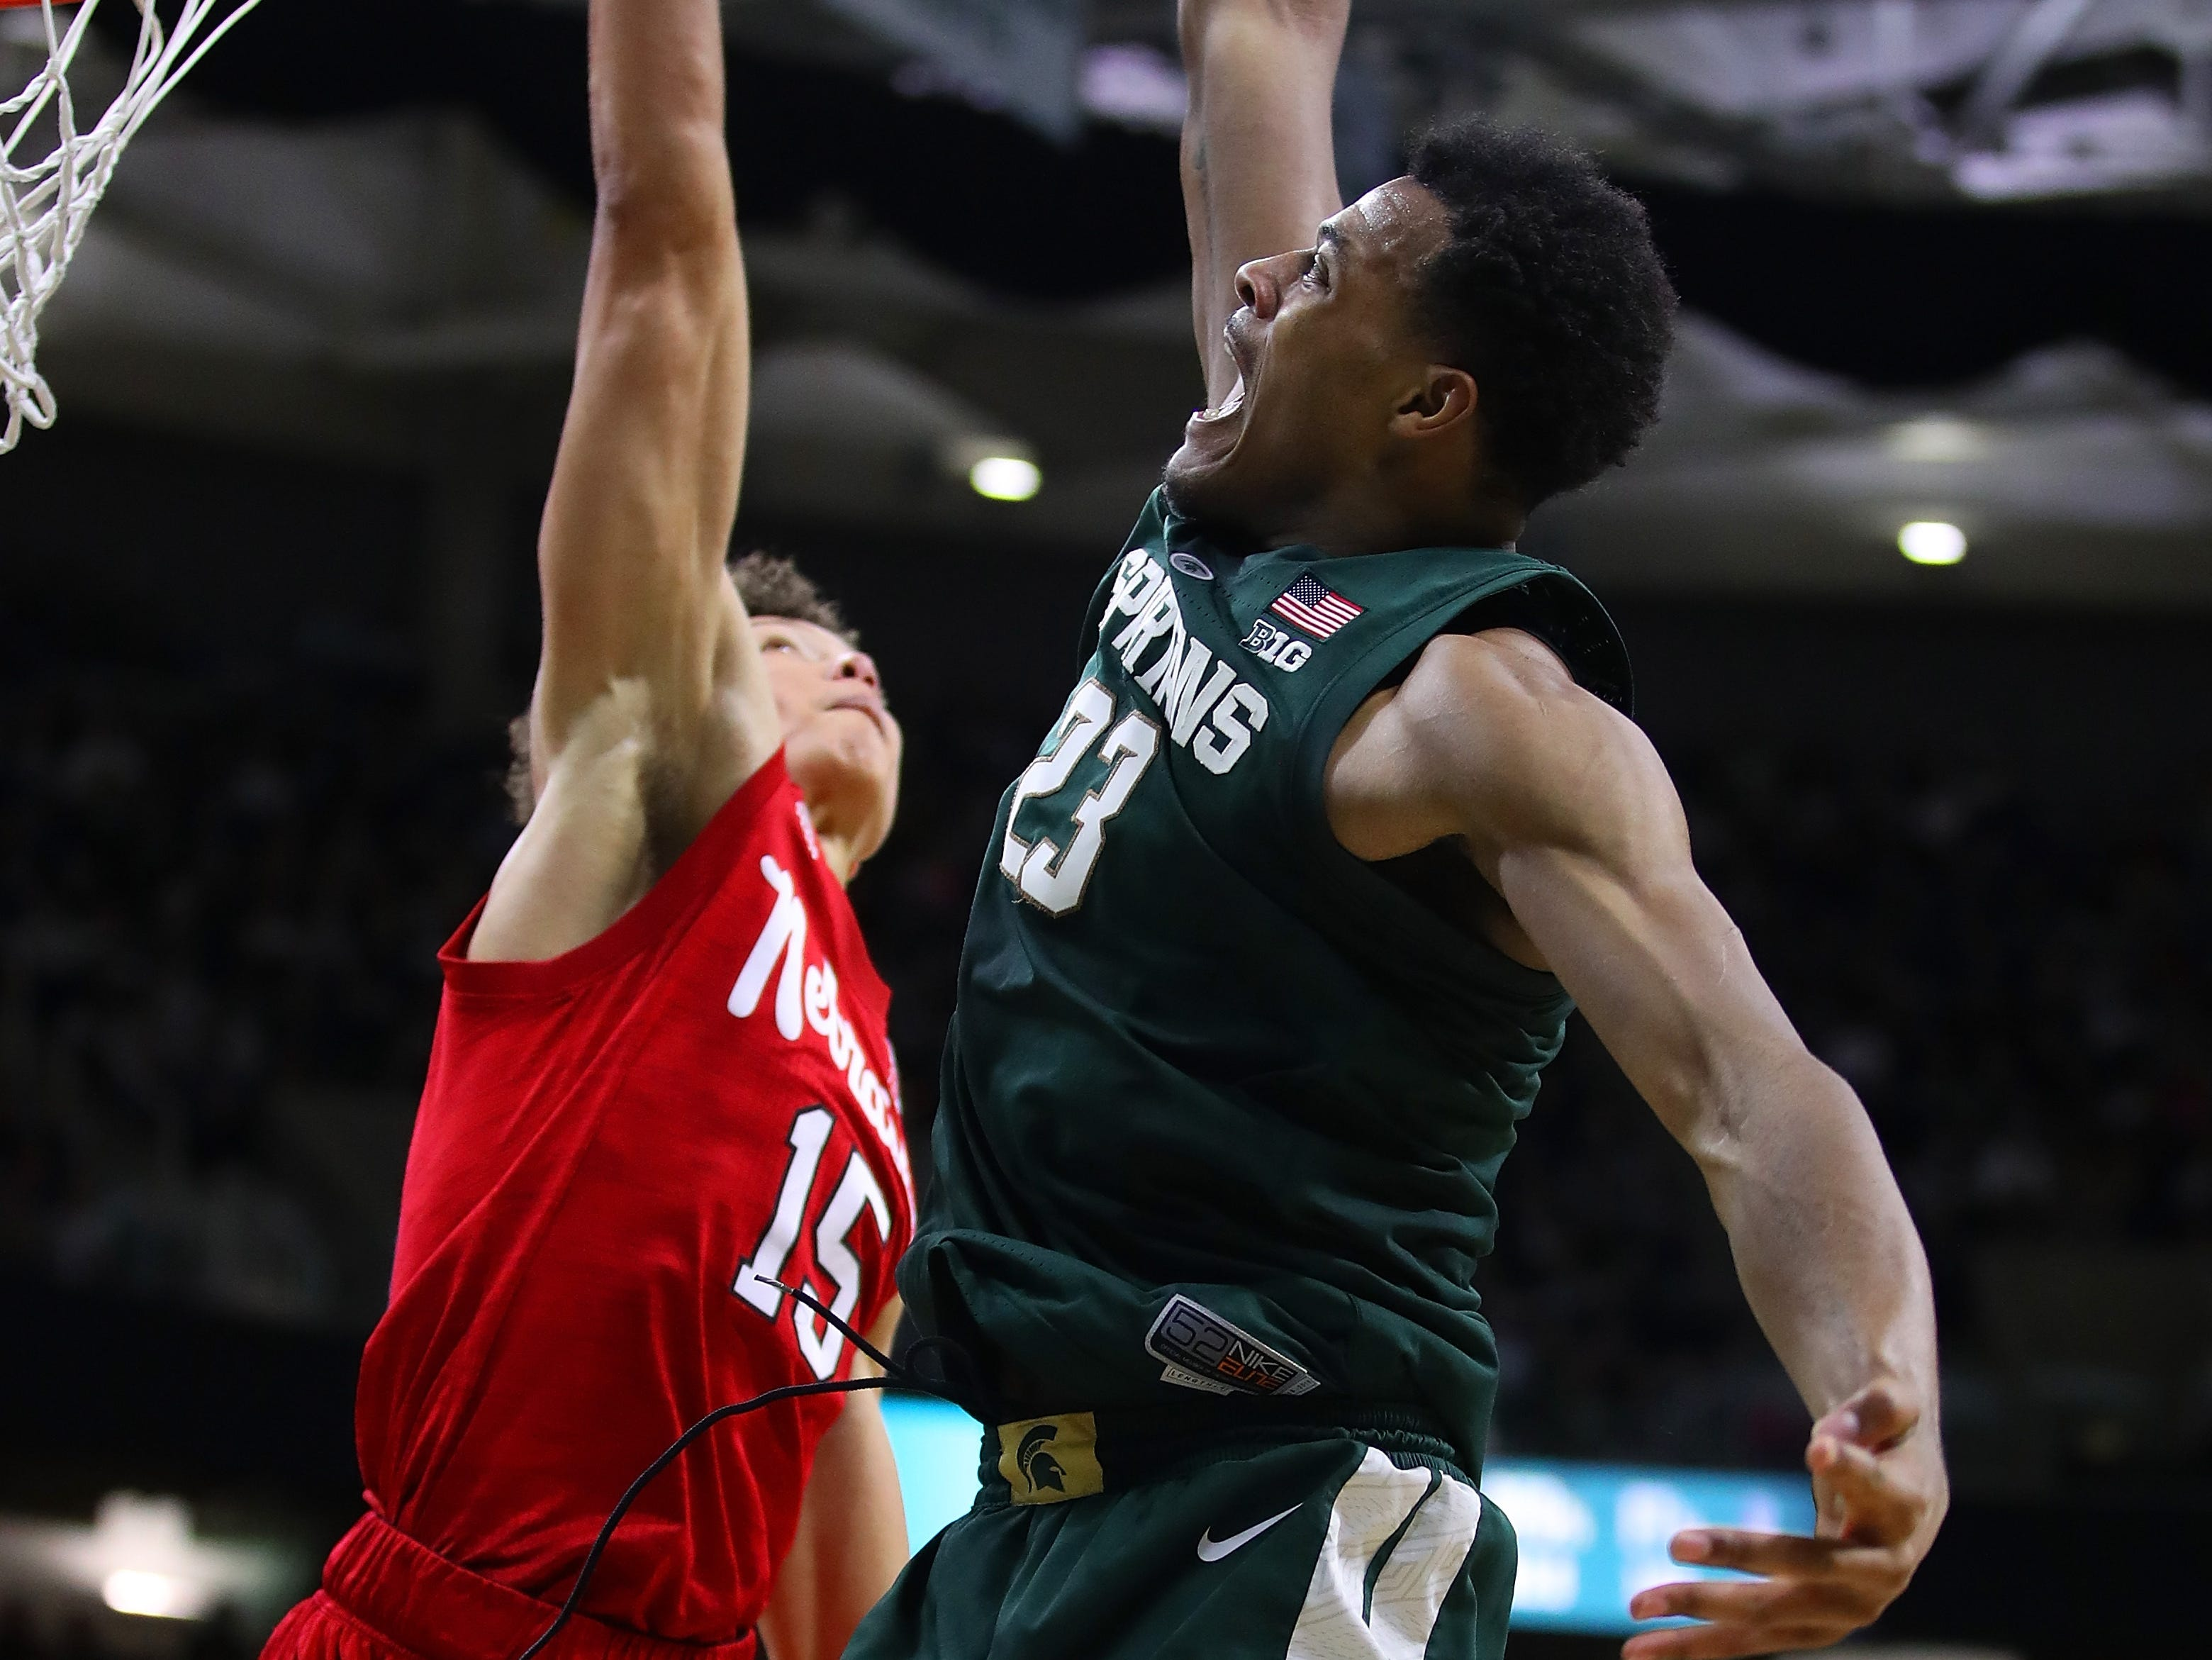 Xavier Tillman (23) of the Michigan State Spartans tries to dunk over Isaiah Roby (15) of the Nebraska Cornhuskers during the first half at Breslin Center on March 05, 2019 in East Lansing, Michigan.